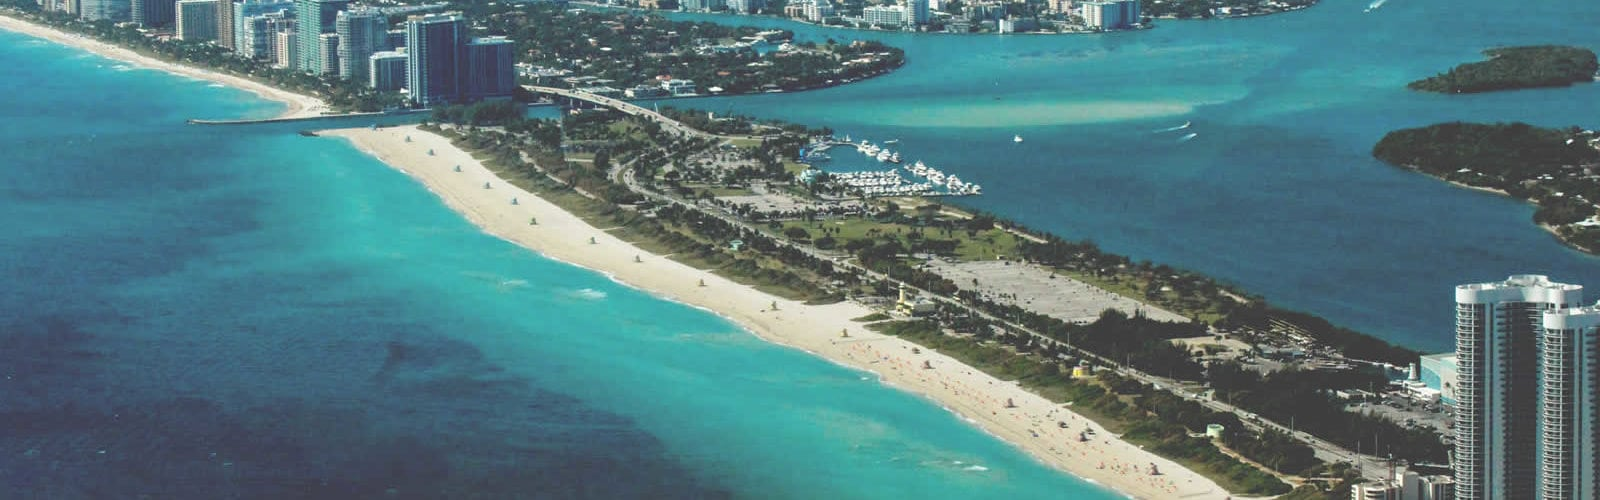 visiter-activites-miami-beach-musee-plage-soirees-une